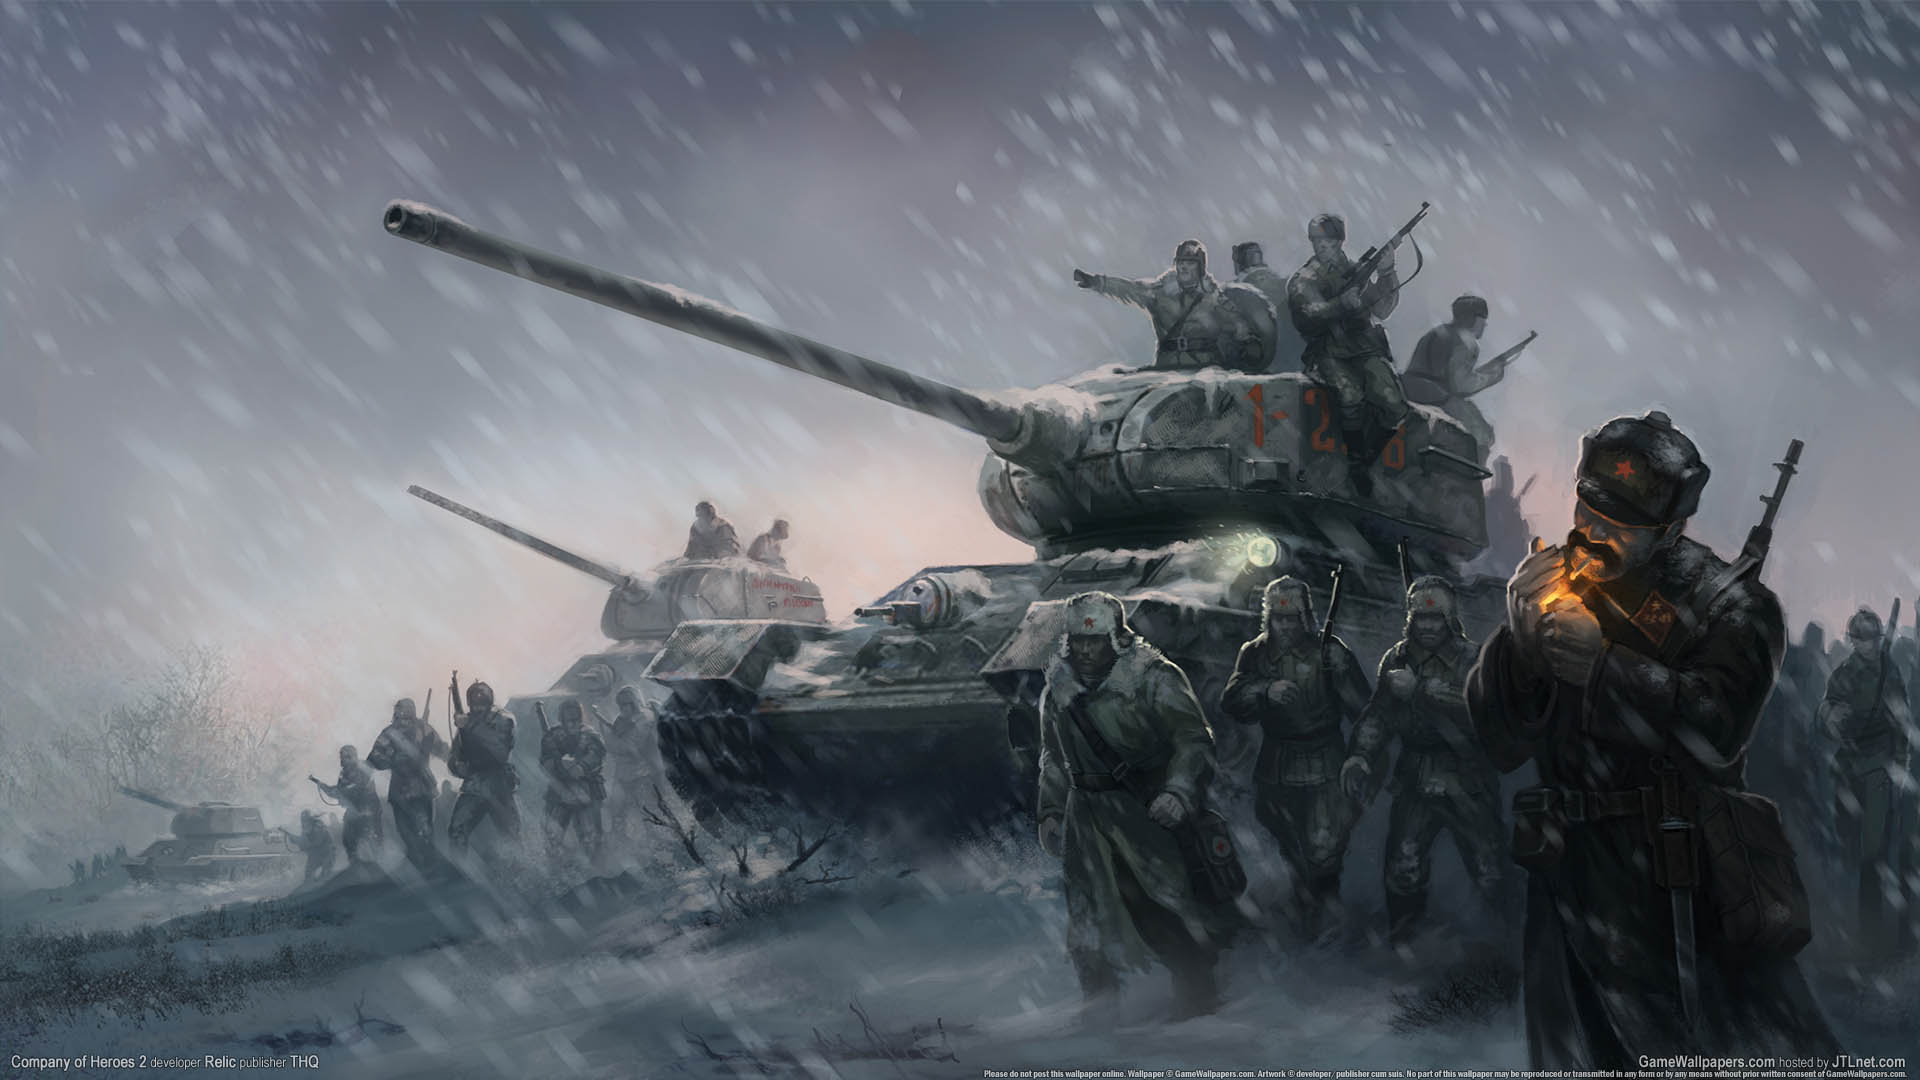 Company of heroes 2 wallpaper 01 1920x1080 for The wallpaper company